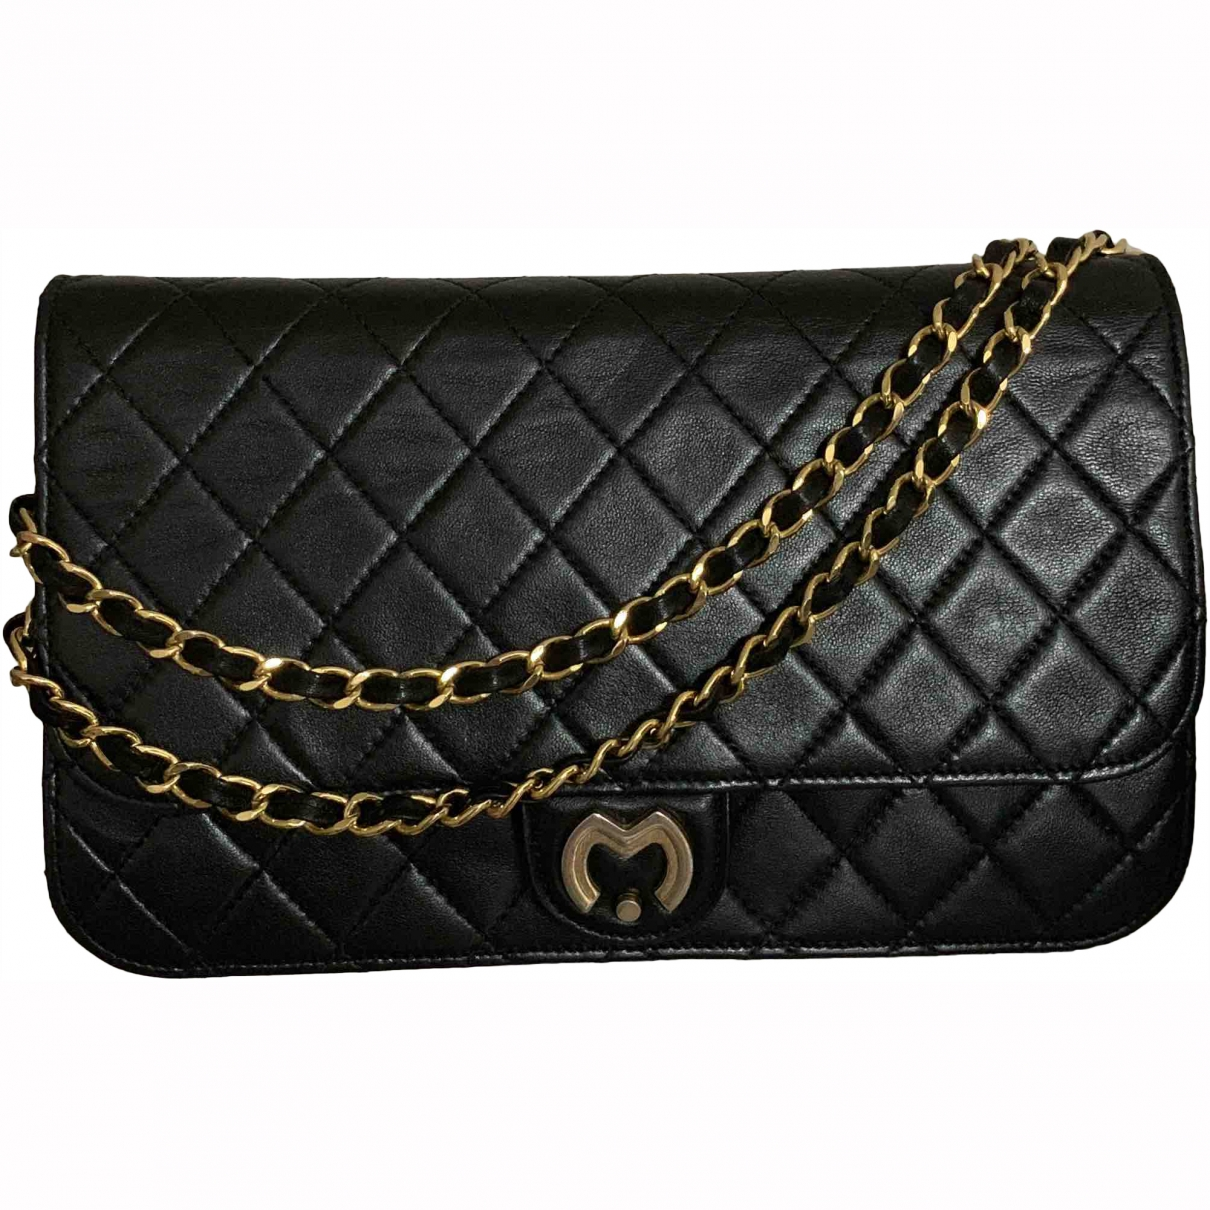 Mila Schön Concept \N Black Leather handbag for Women \N